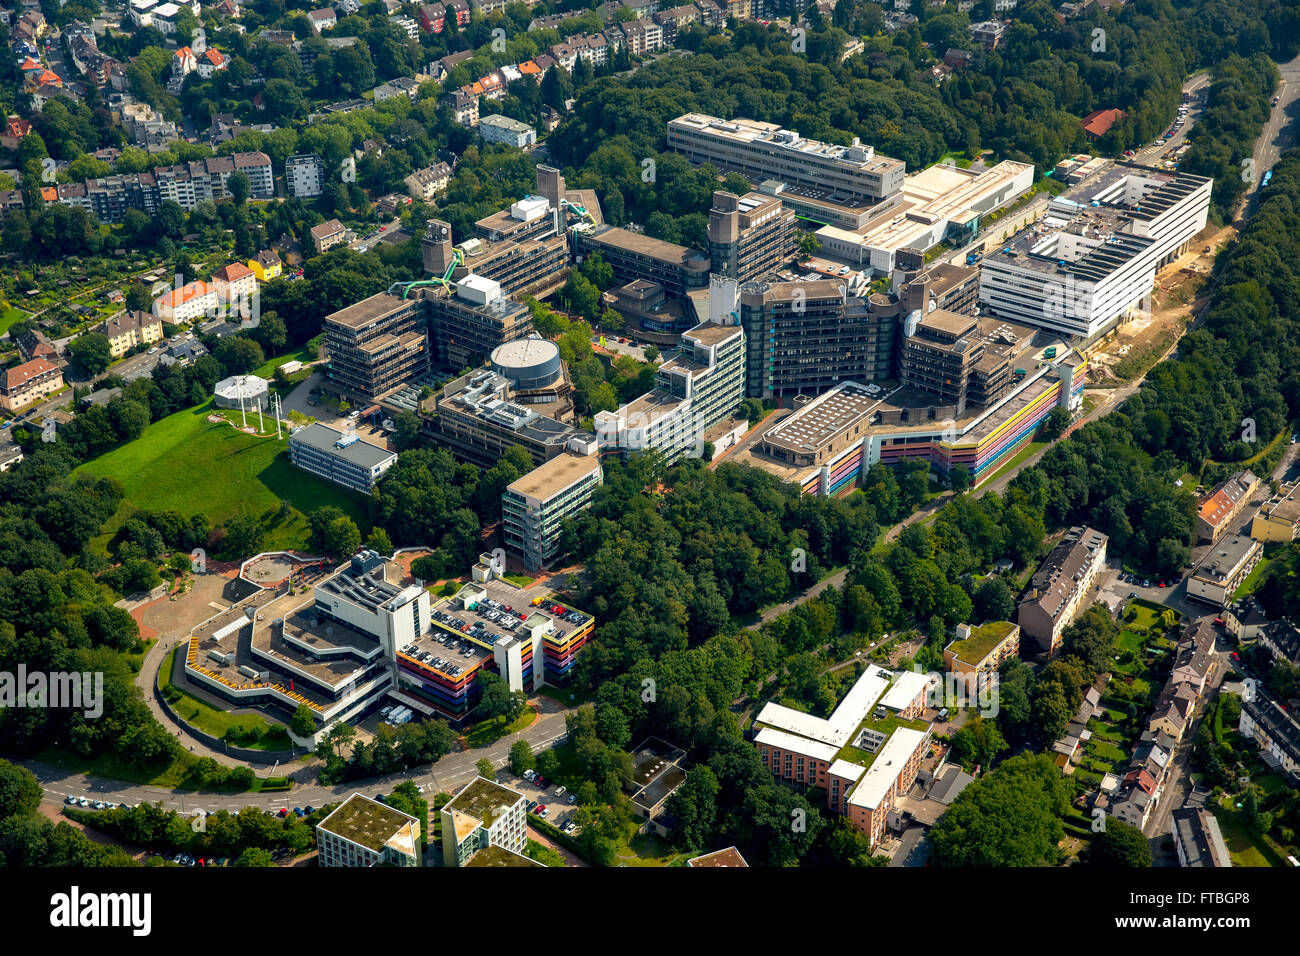 Aerial view, University of Wuppertal, BUW, Polytechnic